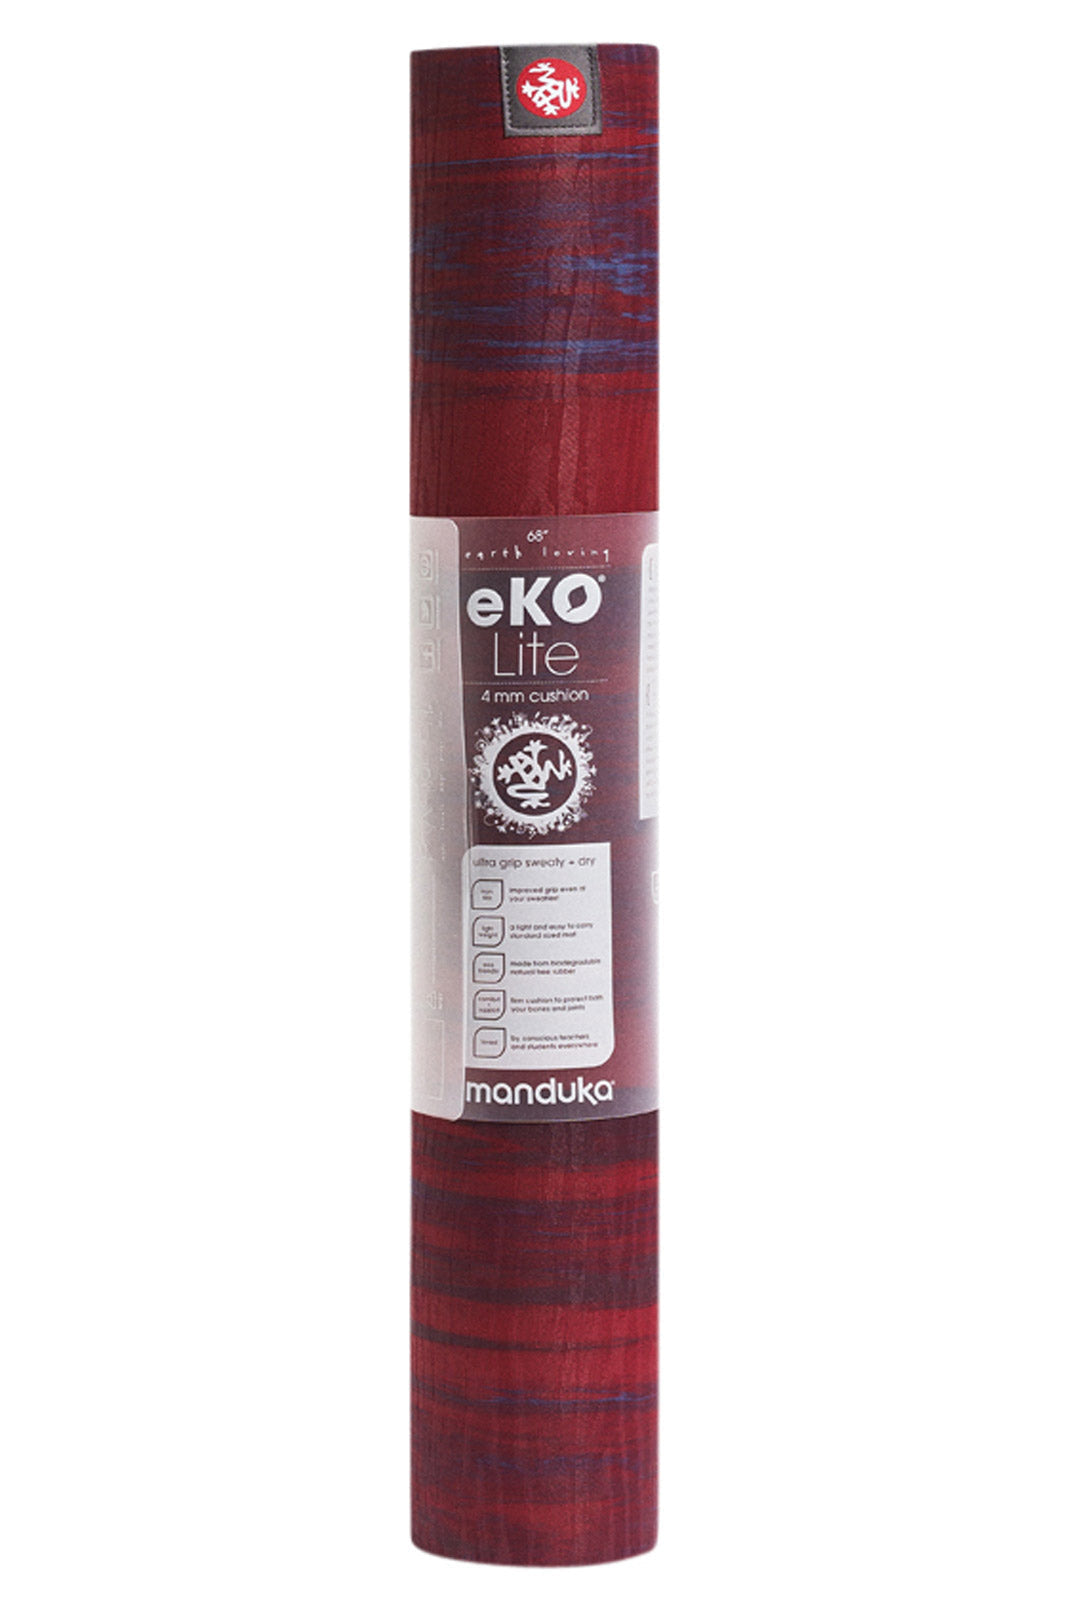 Manduka eKO Lite 4mm - Resound image 1 - The Sports Edit